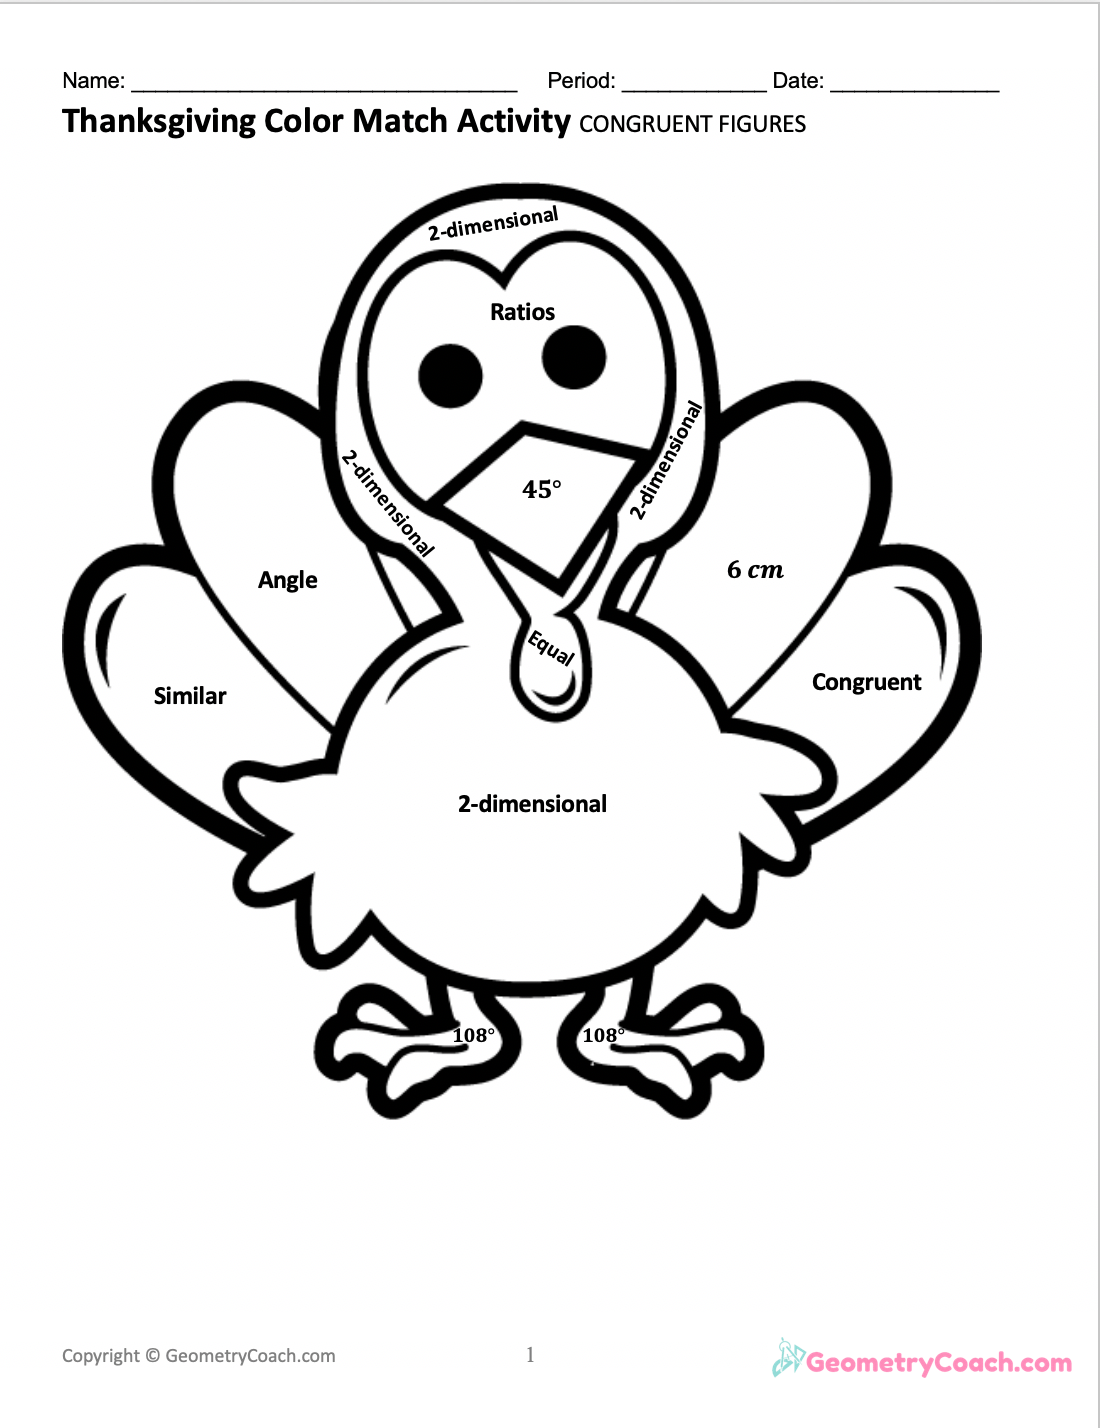 FREE Thanksgiving Worksheet for Geometry ⋆ GeometryCoach.com